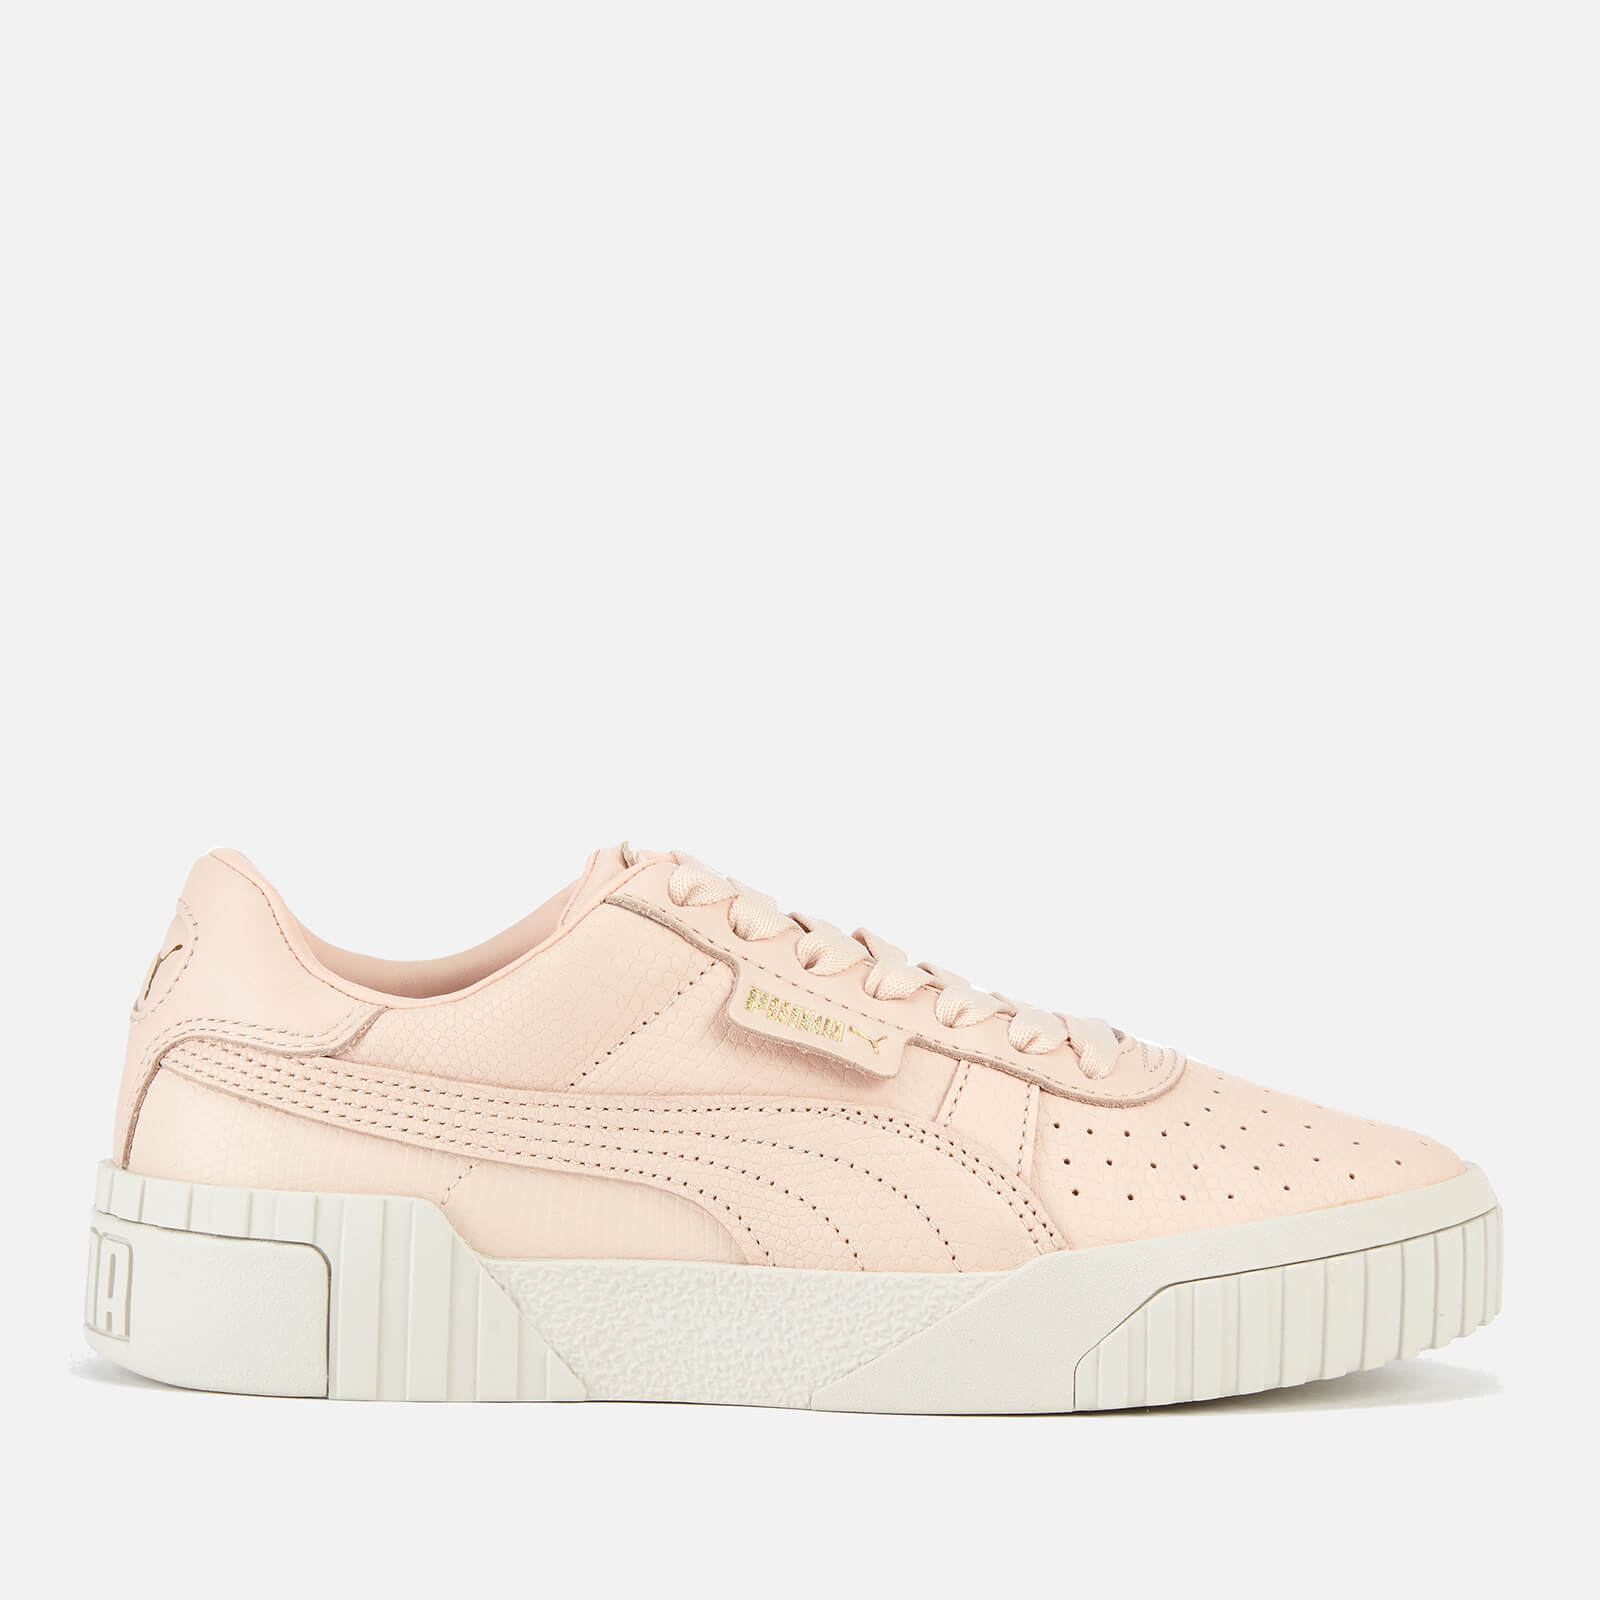 Puma Women's Cali Emboss Trainers - Cream Tan/Cream Tan - UK 7 - Pink